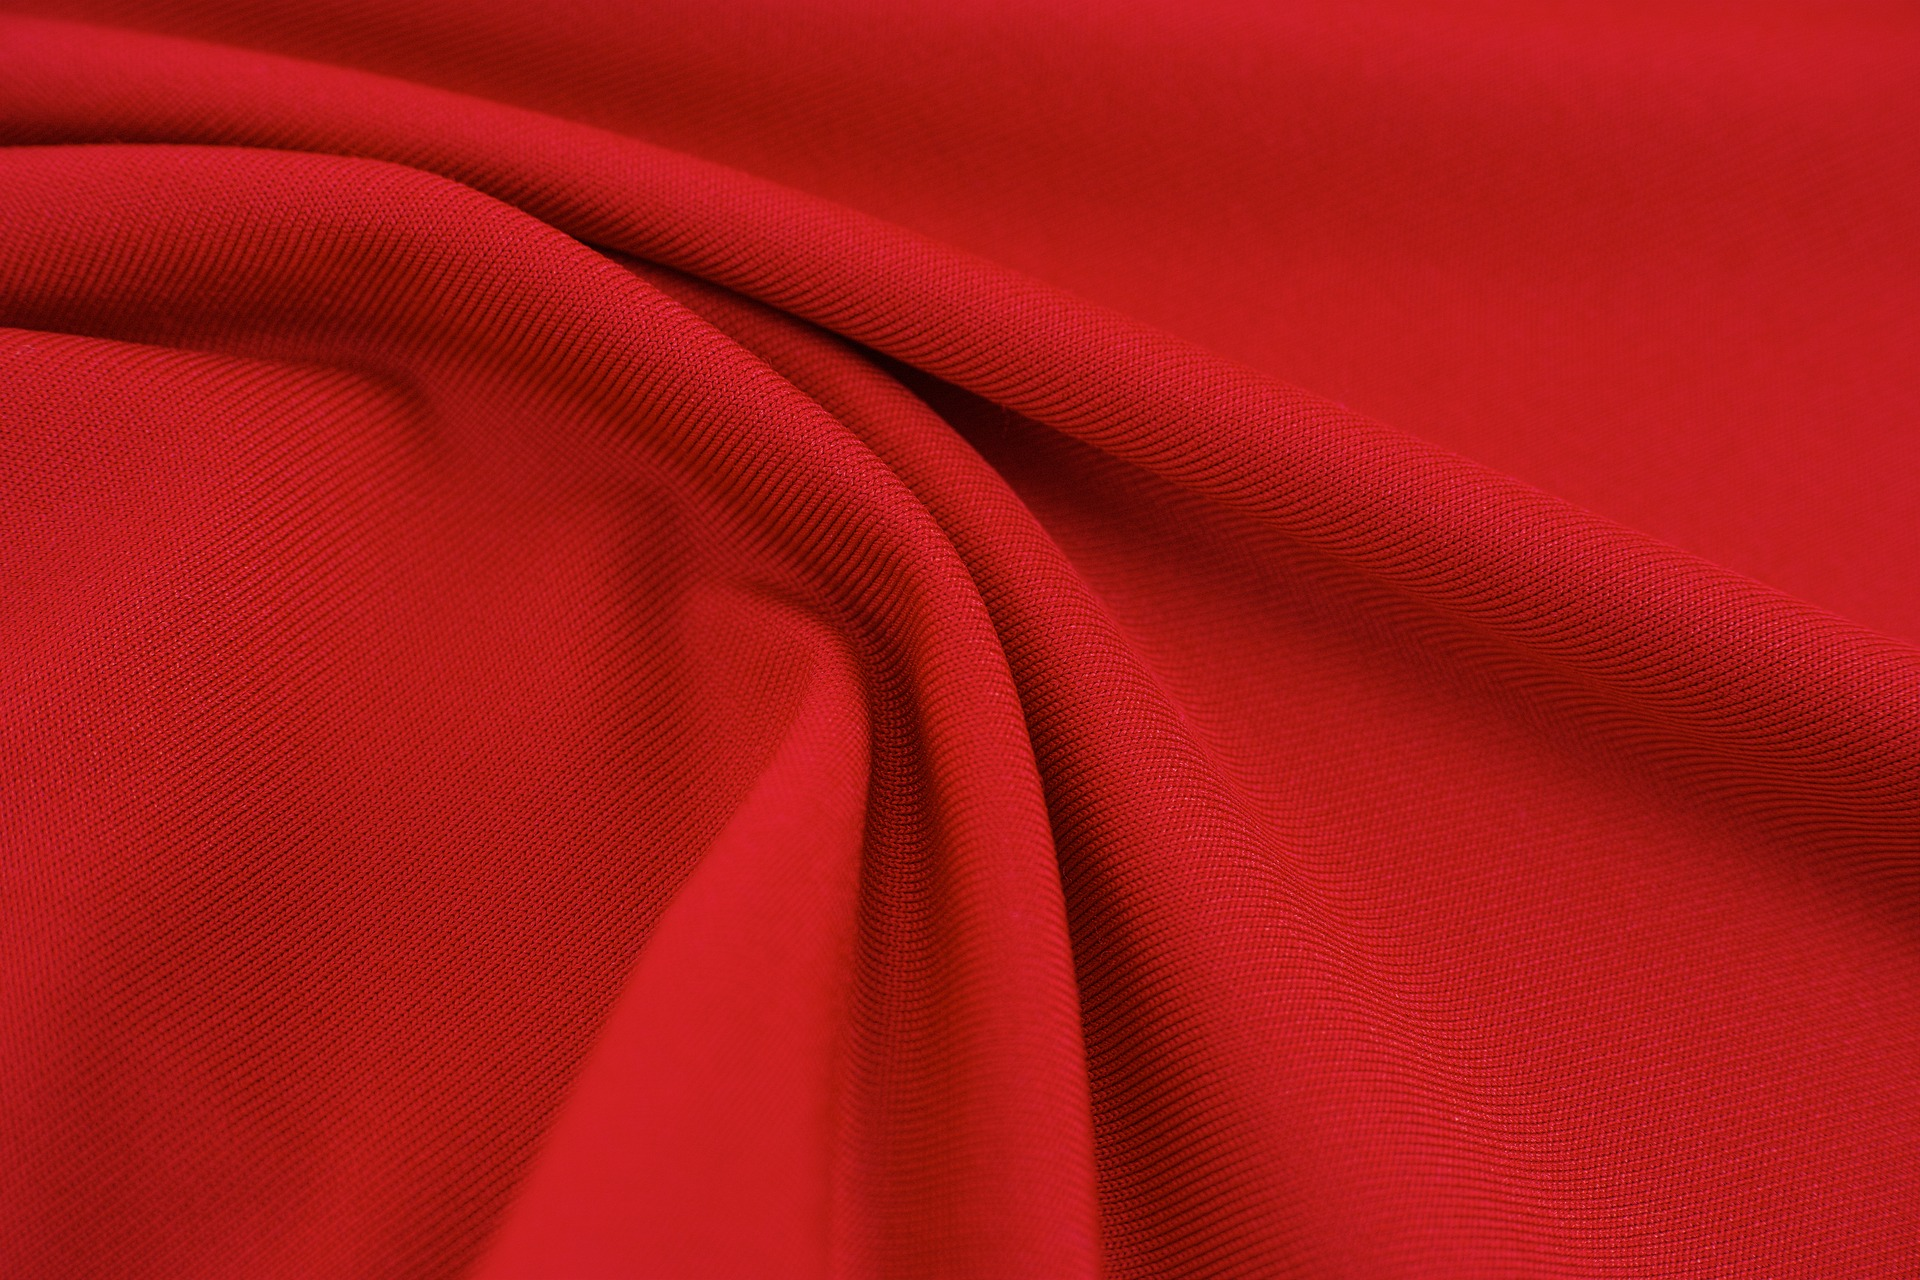 red-2945781_1920